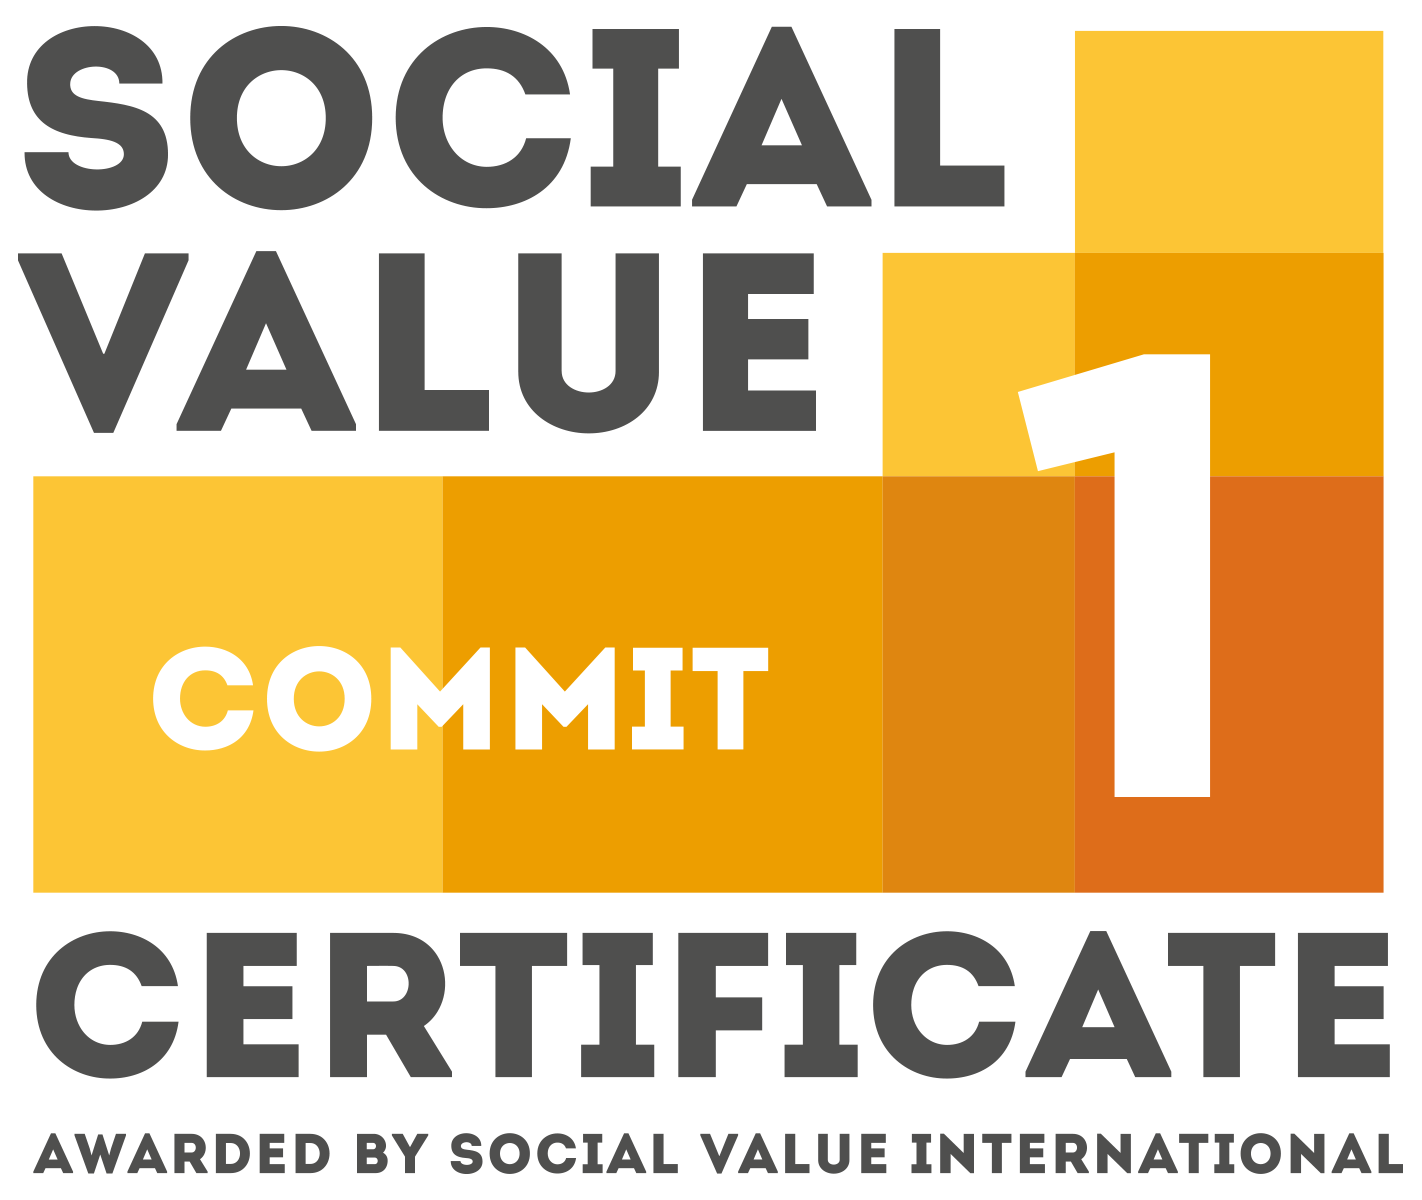 Social Value Commit 1 Certificate - awarded by Social Value International